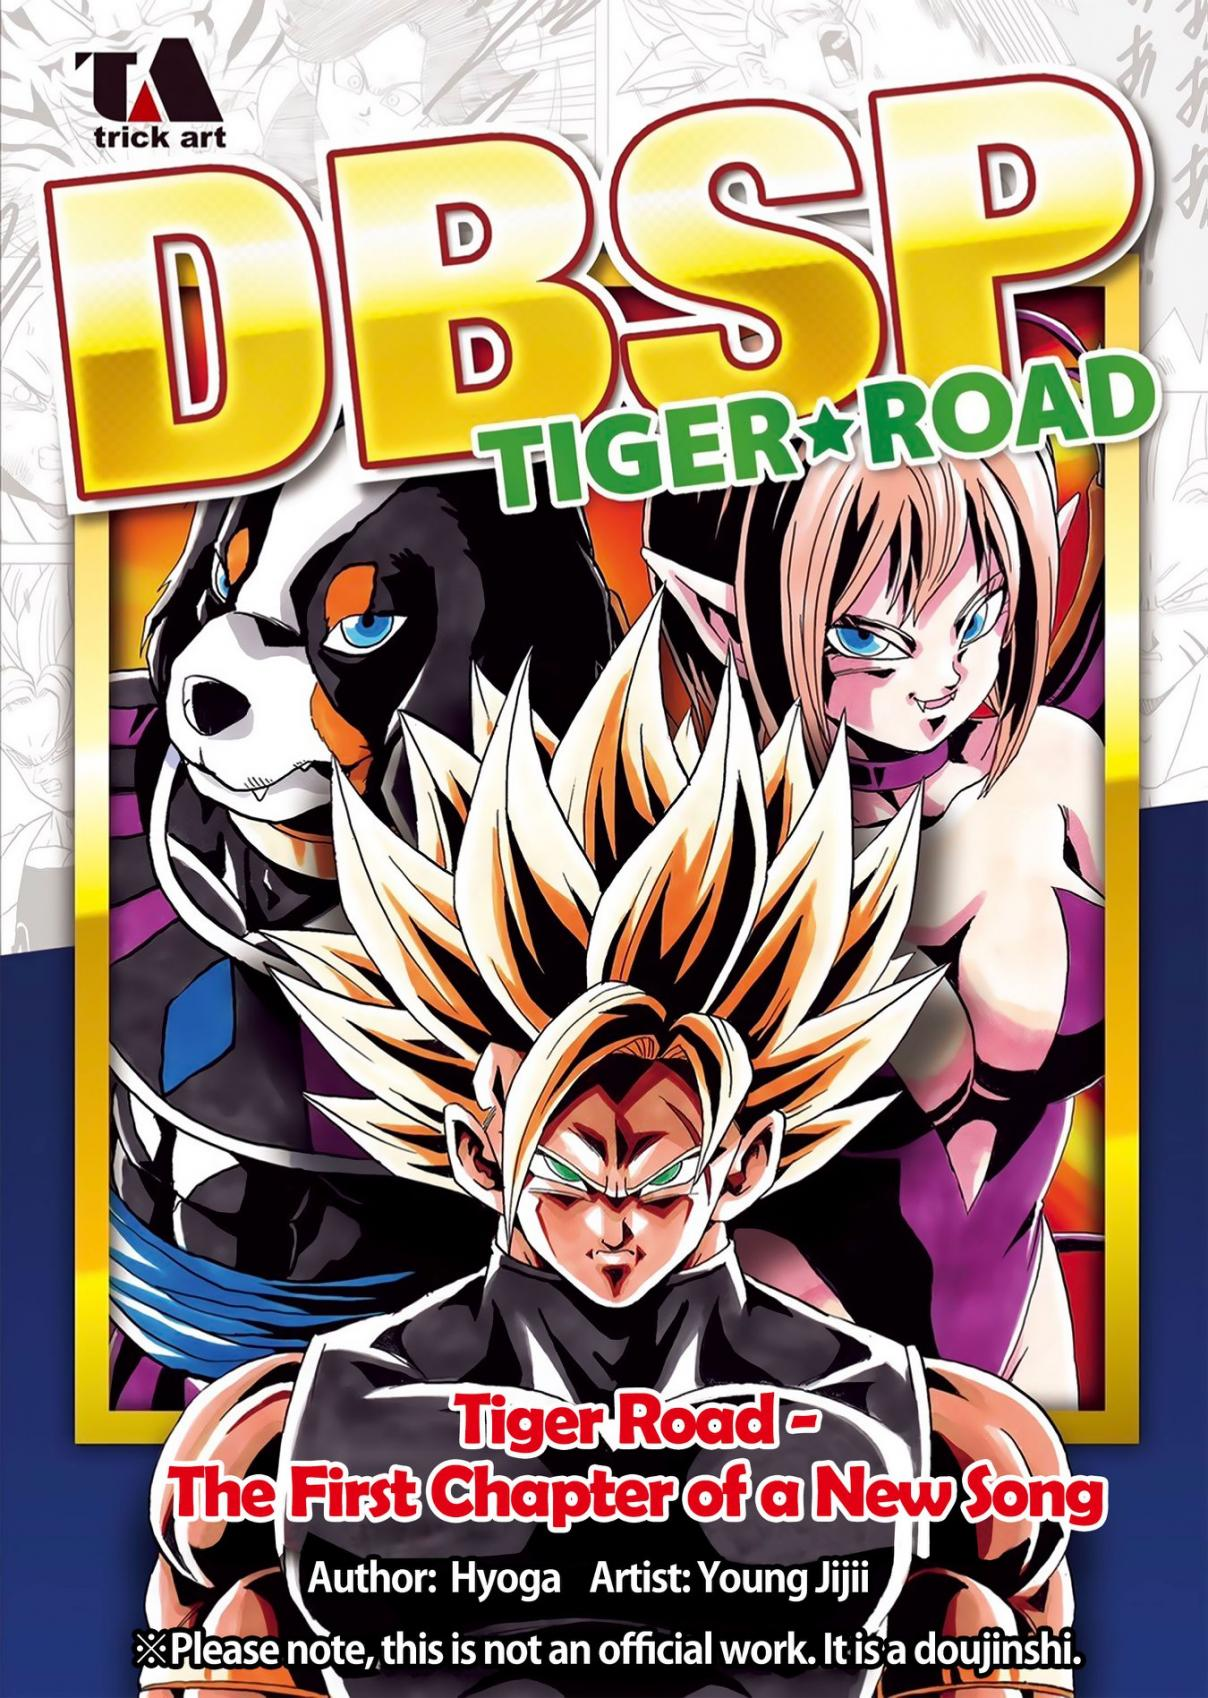 DBSP (Doujinshi) Ch. 1 Tiger Road The First Chapter of a New Song.